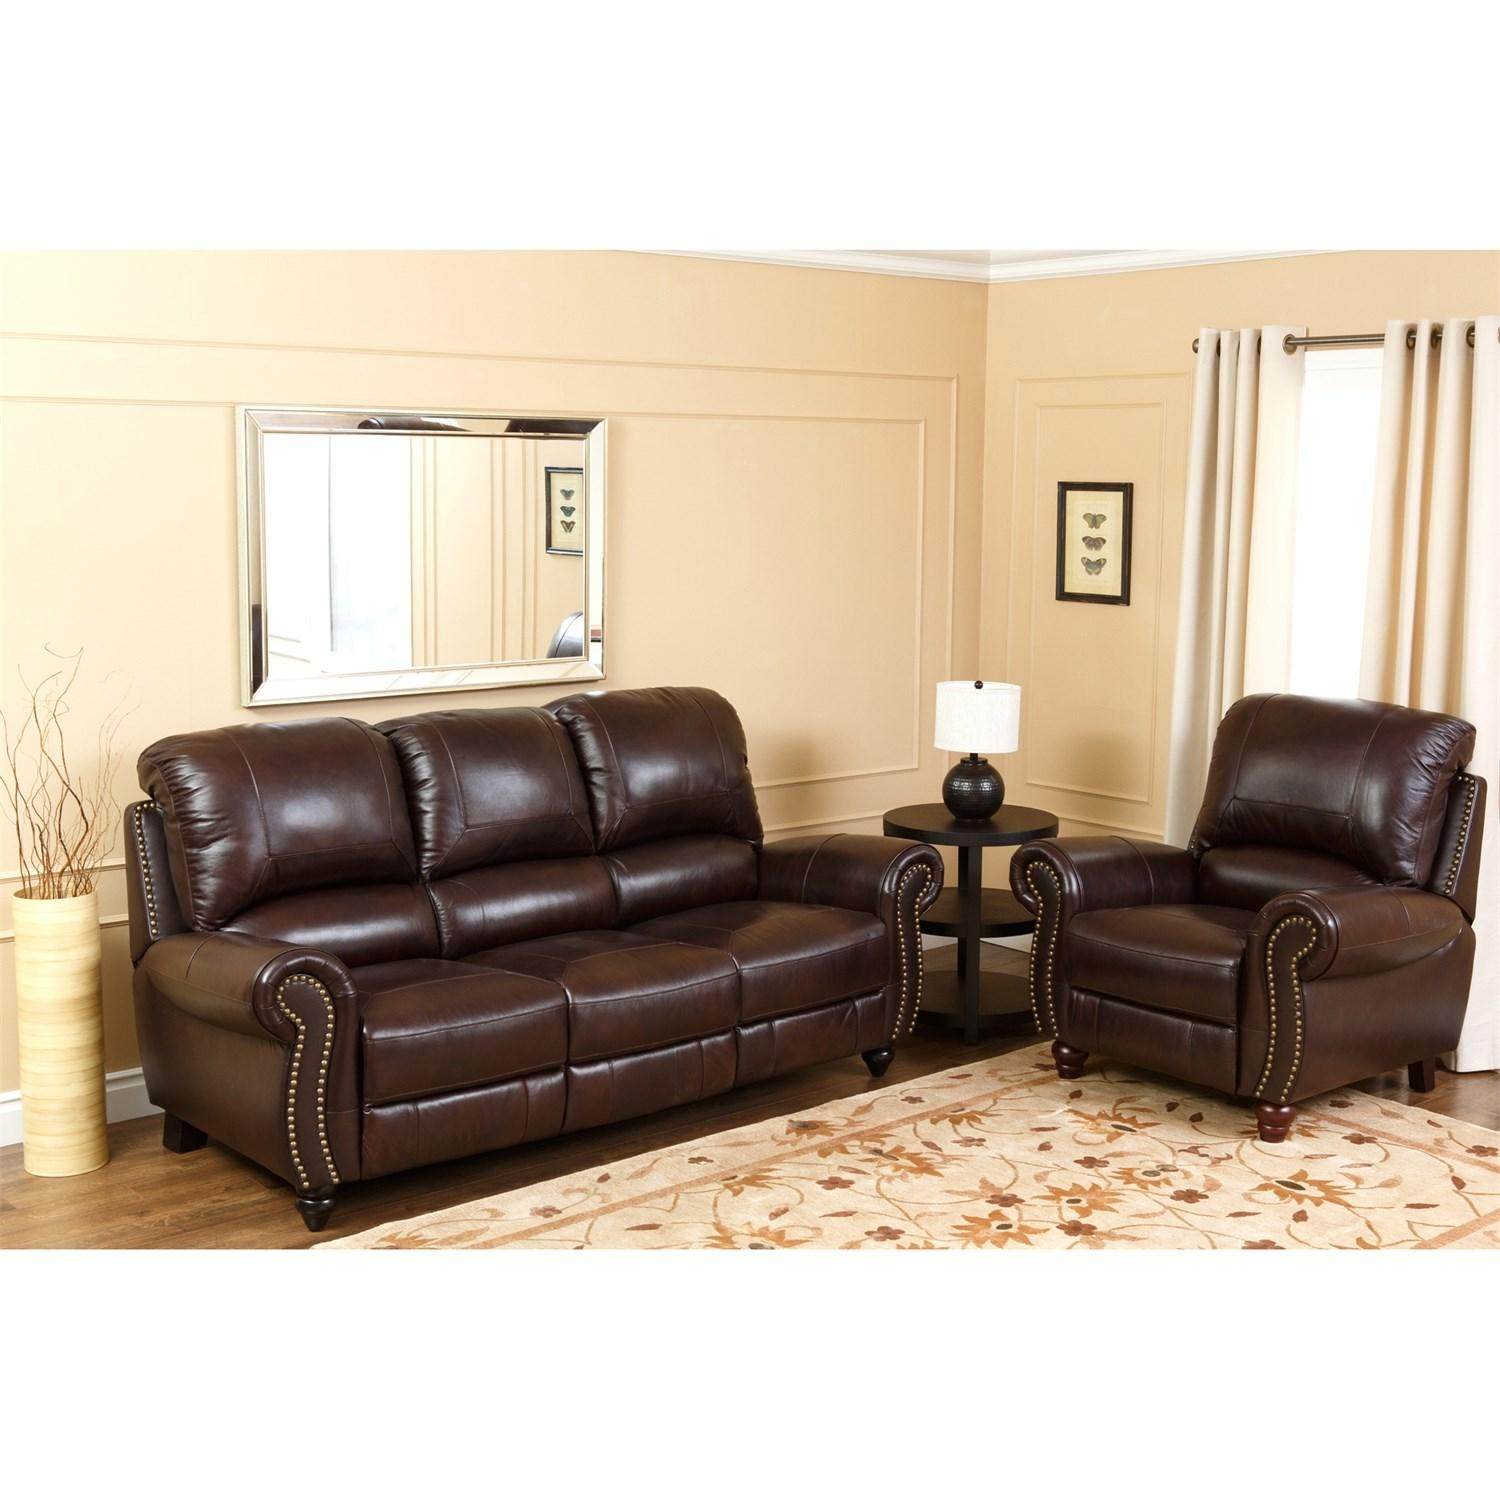 Abbyson Living Ch 8857 Brg 3/1 Canterbury Leather Pushback Intended For Abbyson Living Sofas (Image 6 of 20)